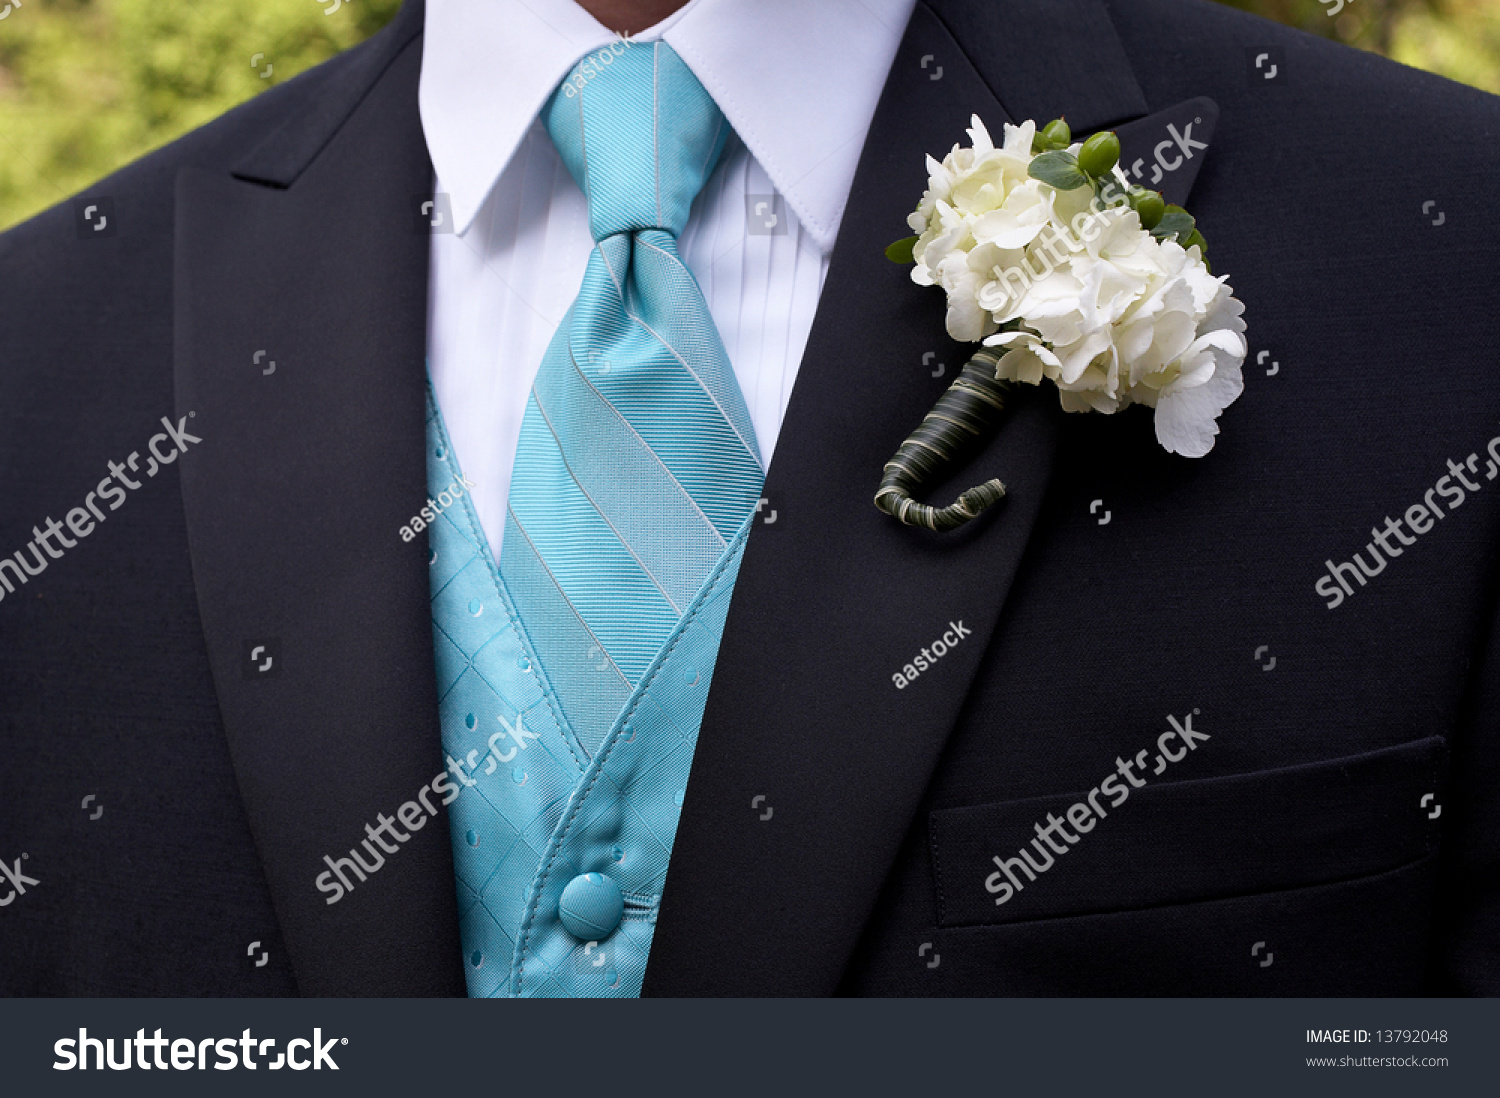 Wedding Boutonniere On Suit Jacket Groom Stock Photo (Royalty Free ...